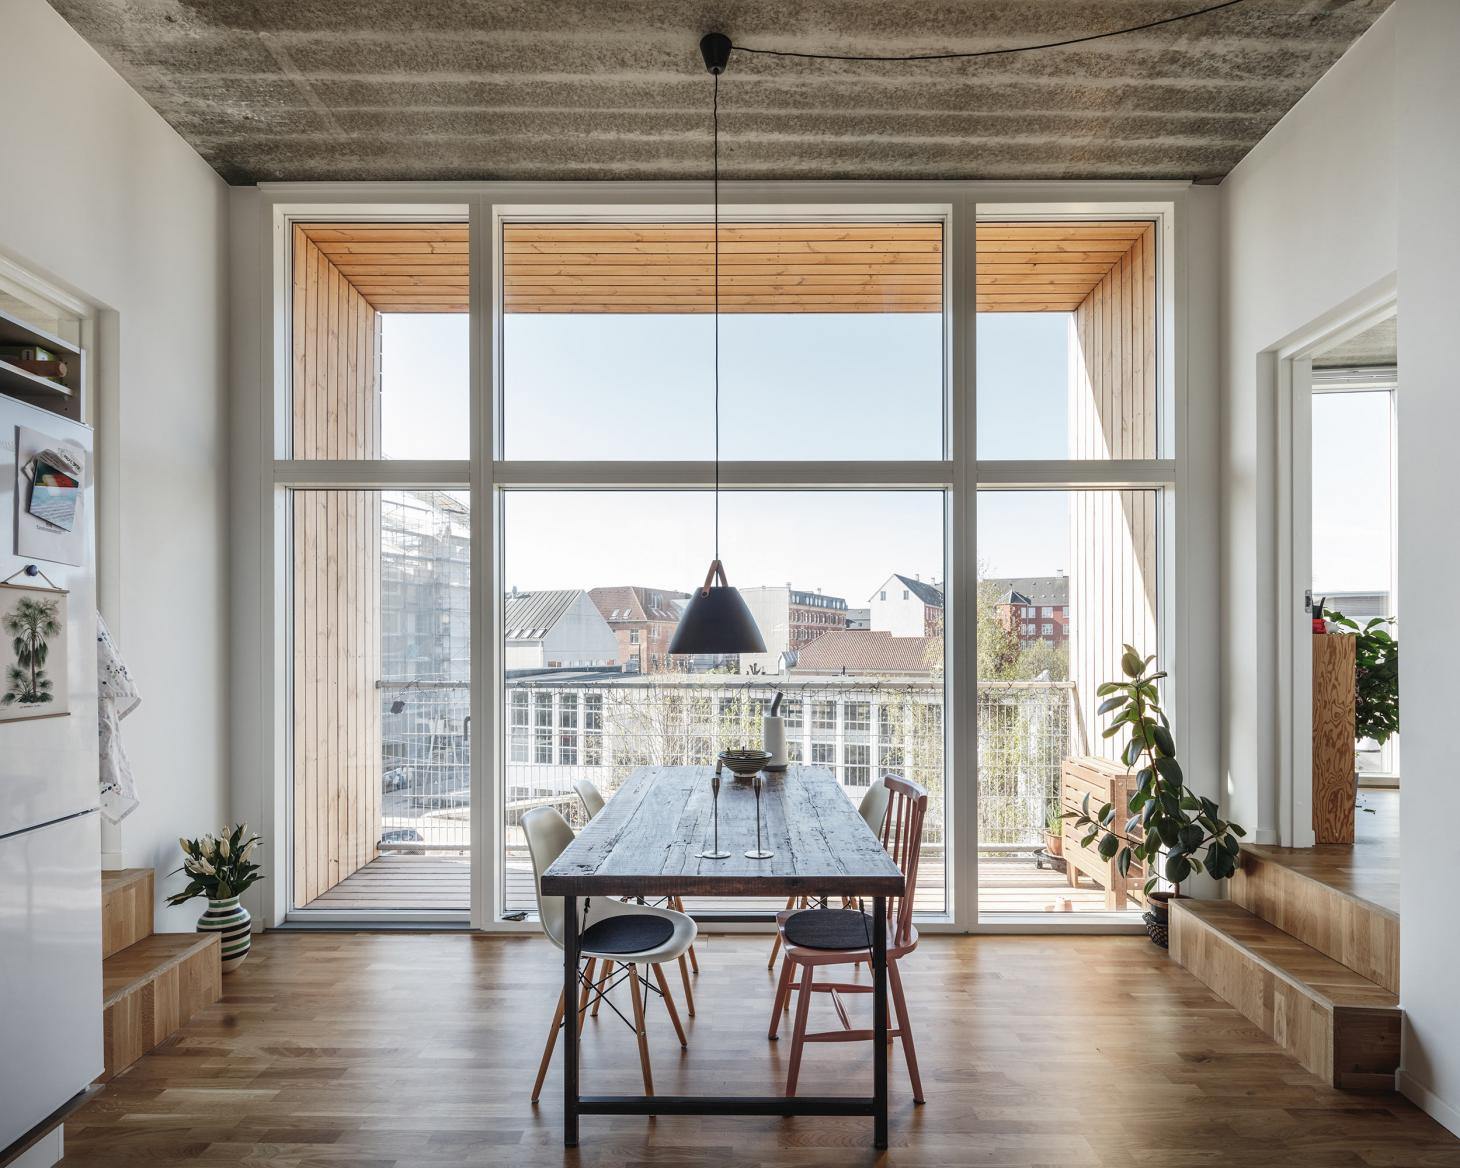 BIG interior in Copenhagen housing project